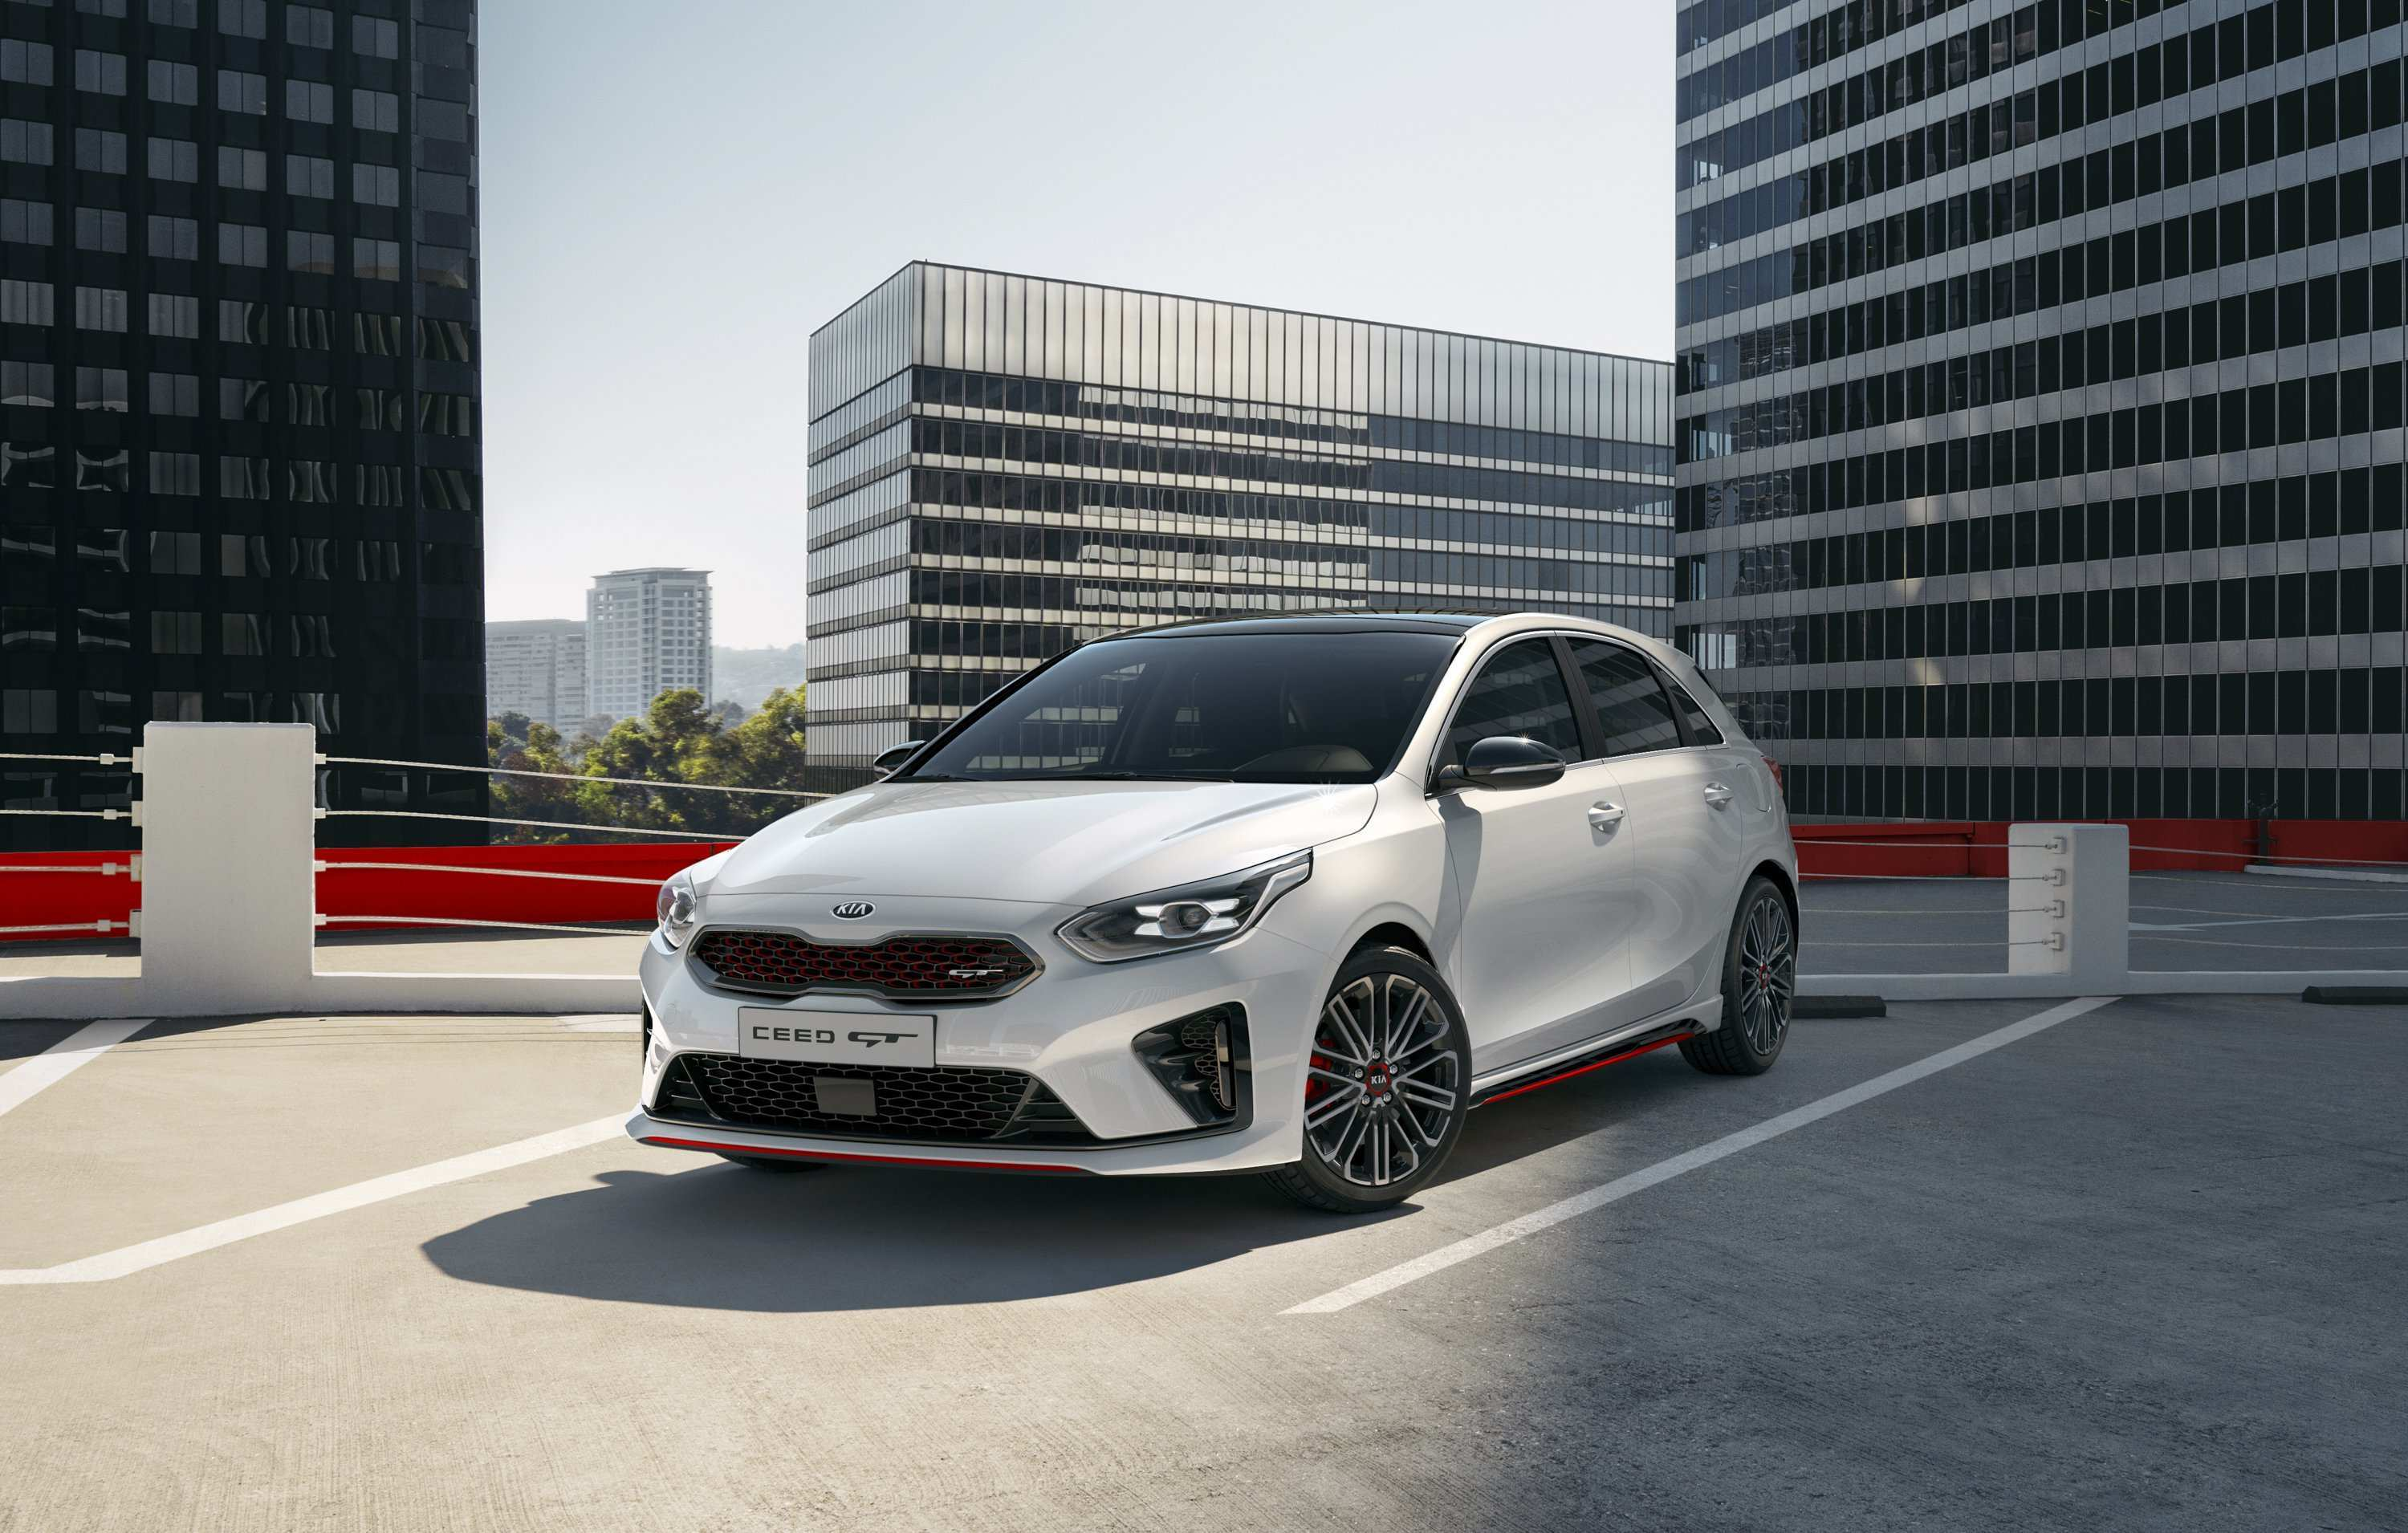 37 The Best 2019 Kia Gt Coupe Release Date And Concept